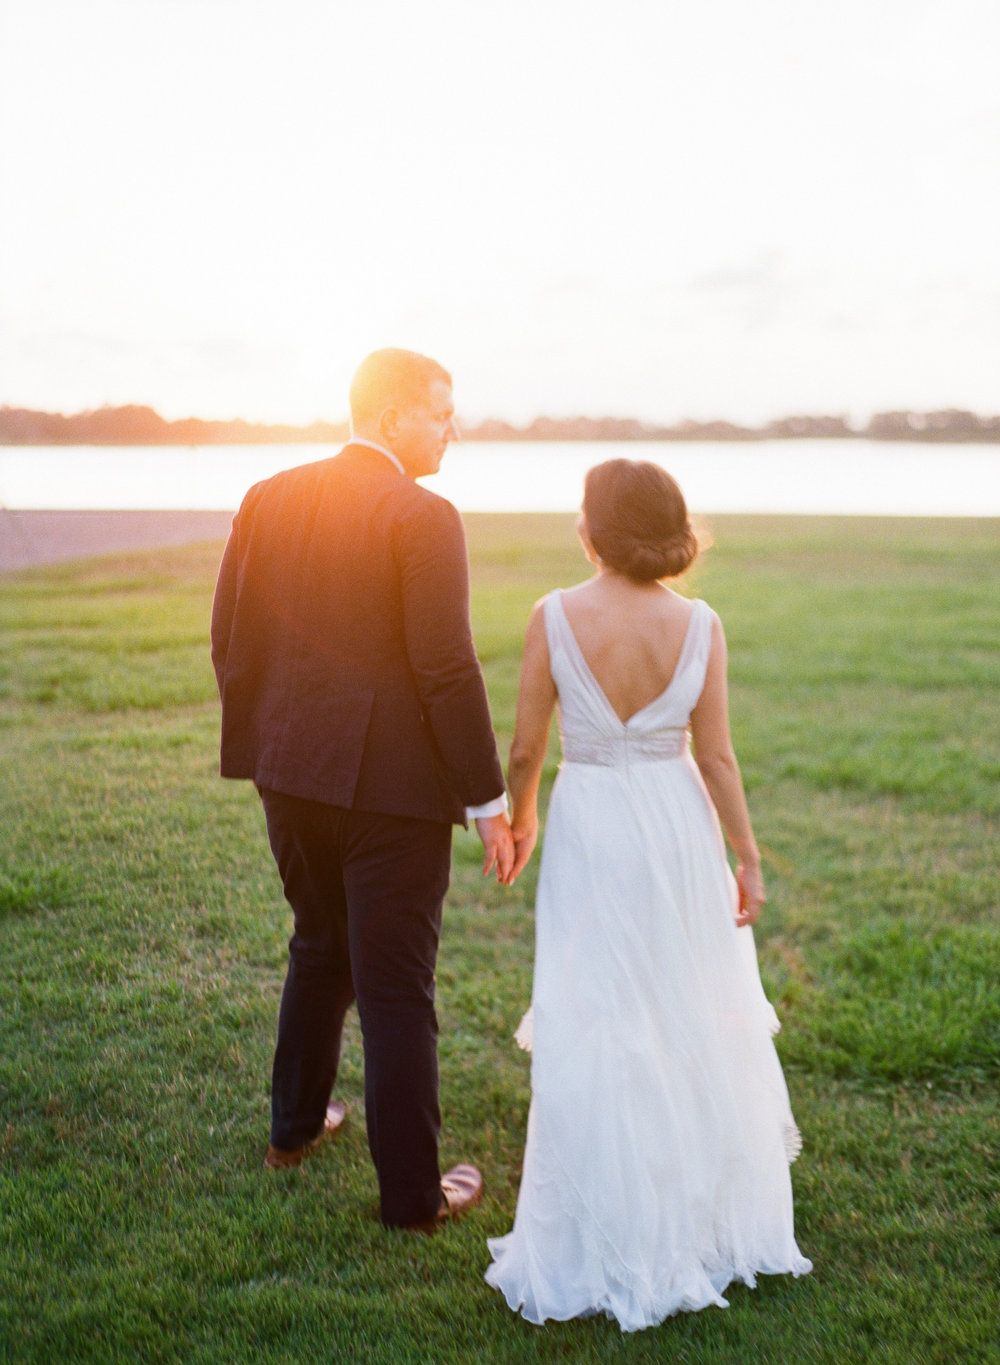 Wedding portraits at The Island House on Johns Island SC  //  Charleston wedding photos by Lauren Jonas Photography